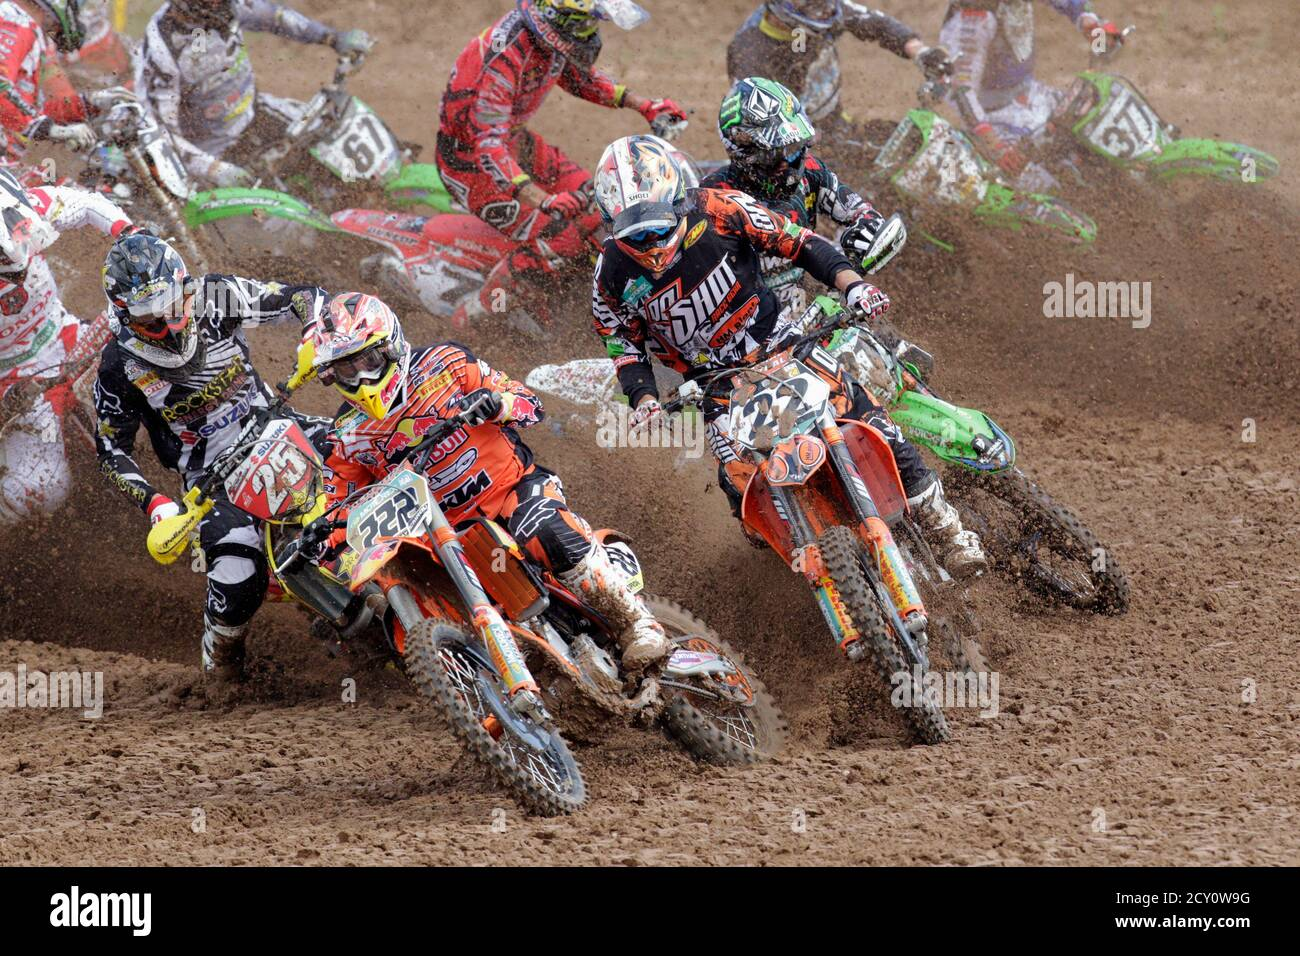 Clement Desalle of Belgium (front L to R), Antonio Cairoli of Italy and Kevin Strijbos of Belgium compete during MX1 FIM motocross World Championship event in Kegums July 15, 2012. REUTERS/Ints Kalnins (LATVIA) Stock Photo